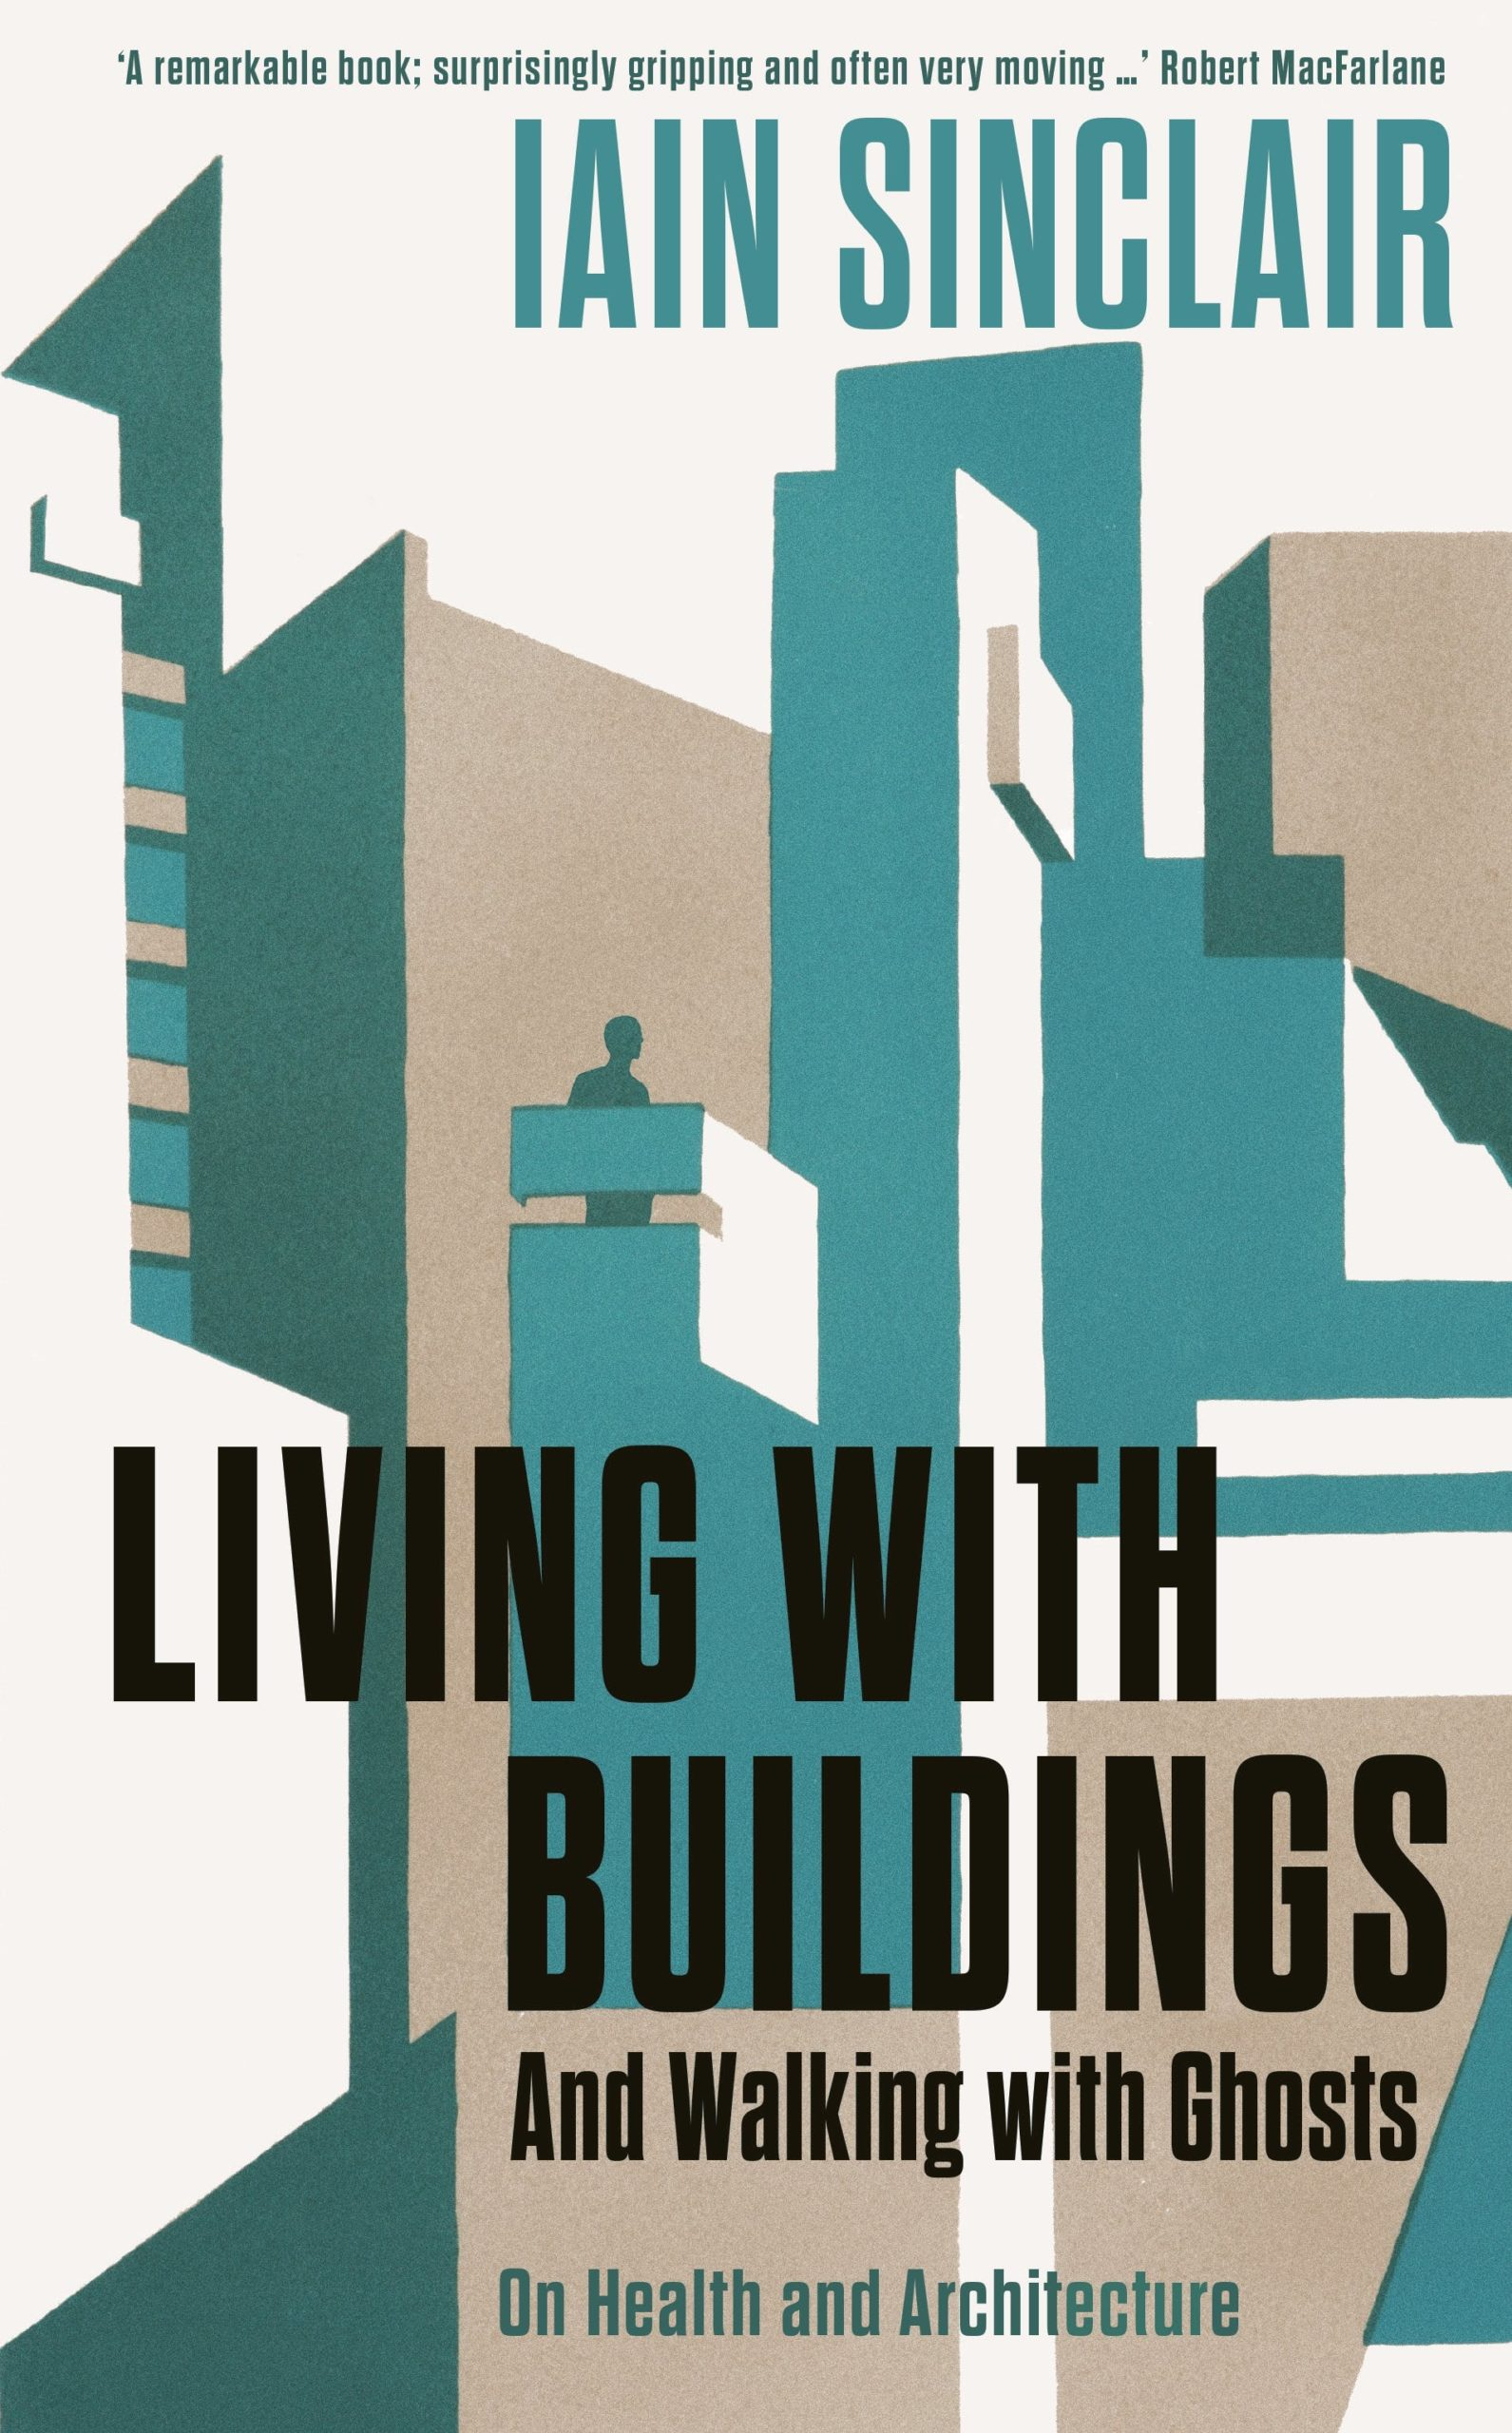 Living With Buildings | Iain Sinclair | Charlie Byrne's